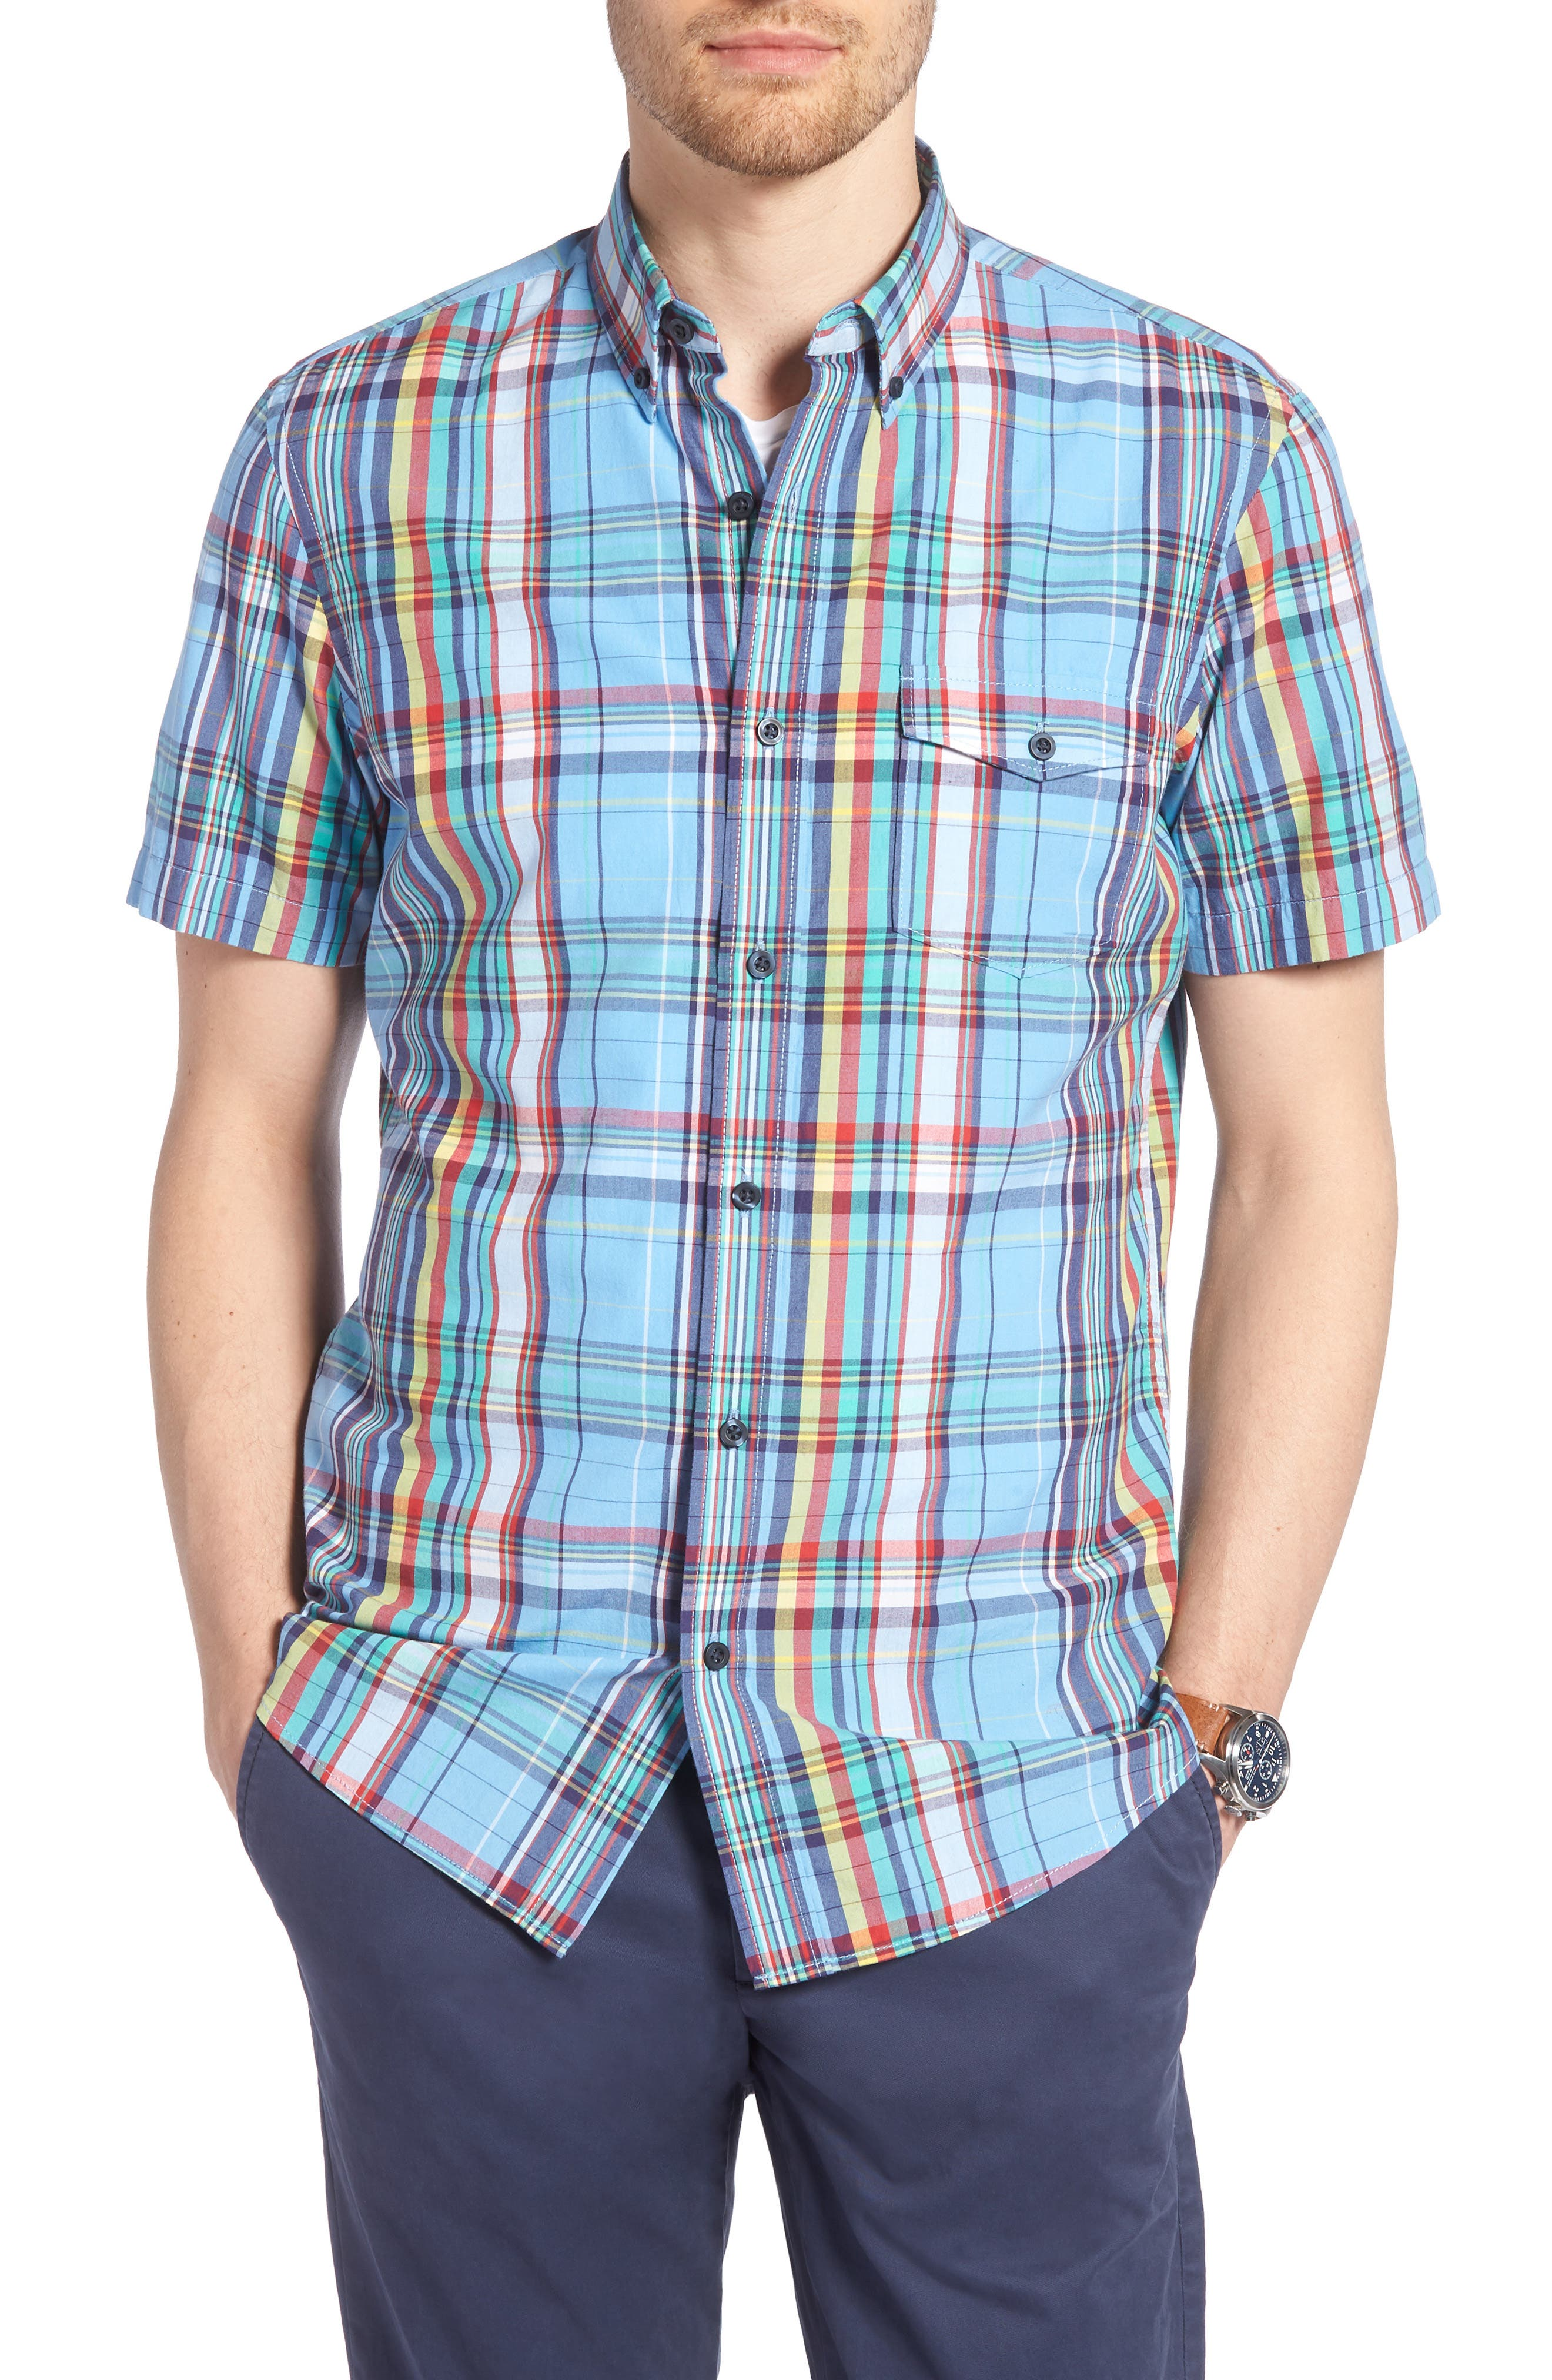 Ivy Trim Fit Madras Plaid Sport Shirt,                             Main thumbnail 1, color,                             420